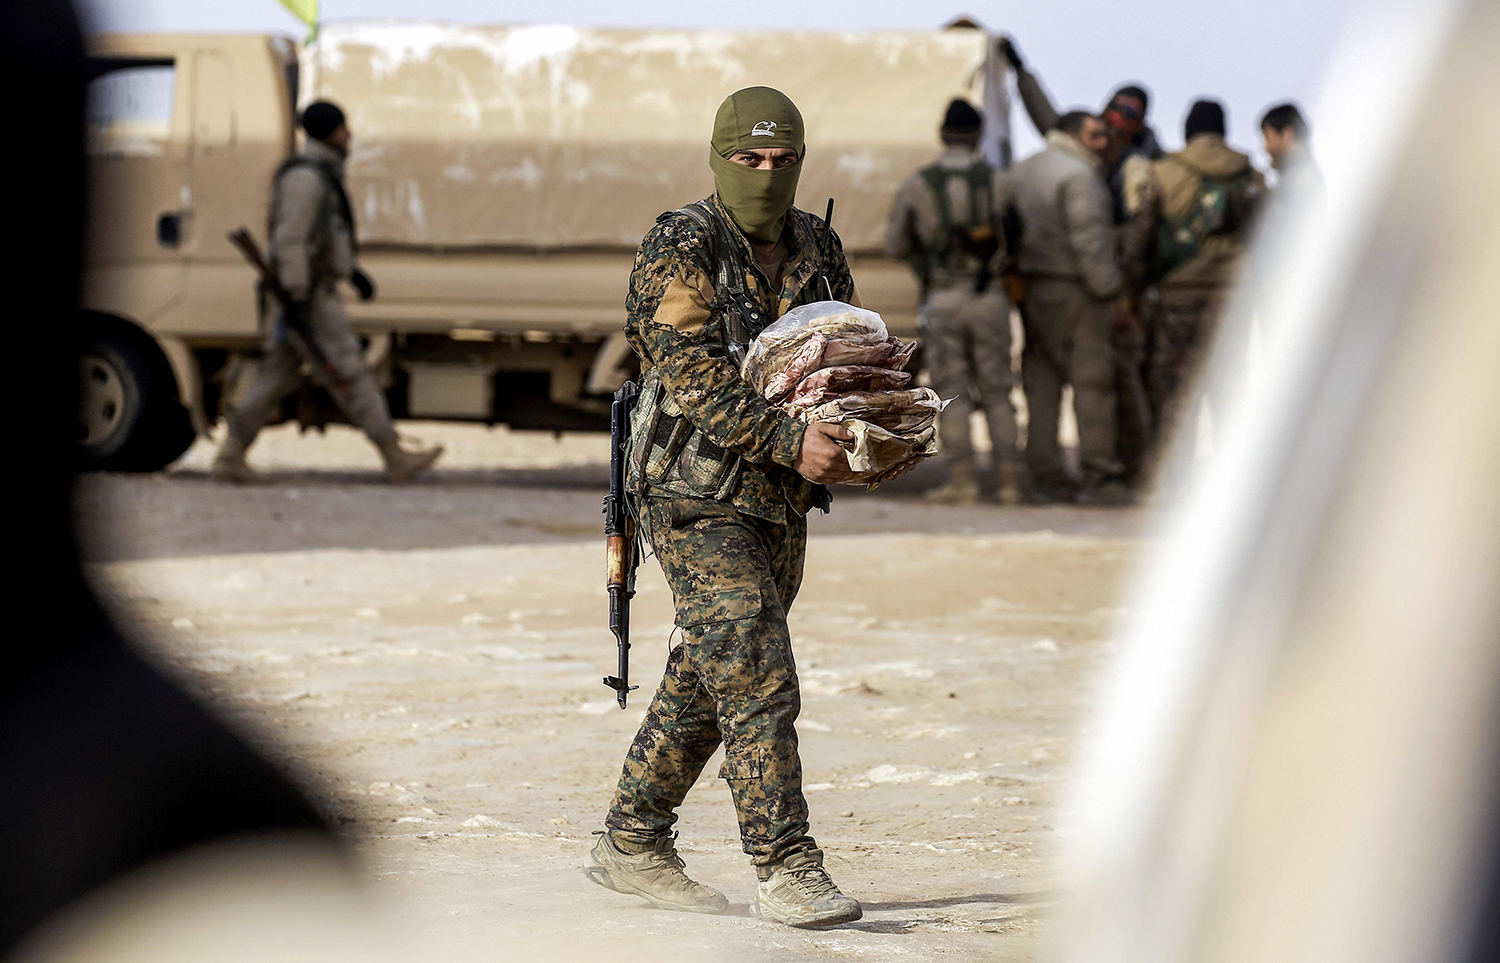 """TOPSHOT - A member of the Syrian Democratic Forces (SDF), made up of US-backed Kurdish and Arab fighters, carries supplies near the village of Bir Fawaz, 20 km north of Raqa, during their offensive towards the Islamic State (IS) group's Syrian stronghold as part of the third phase to retake the city and its surroundings, on February 8, 2017. The Islamic State group is """"completely besieged"""" in its last major stronghold in Syria's Aleppo province, a monitor said, as pro-regime forces pressure the jihadists on several fronts. / AFP PHOTO / DELIL SOULEIMAN / TT / kod 444"""